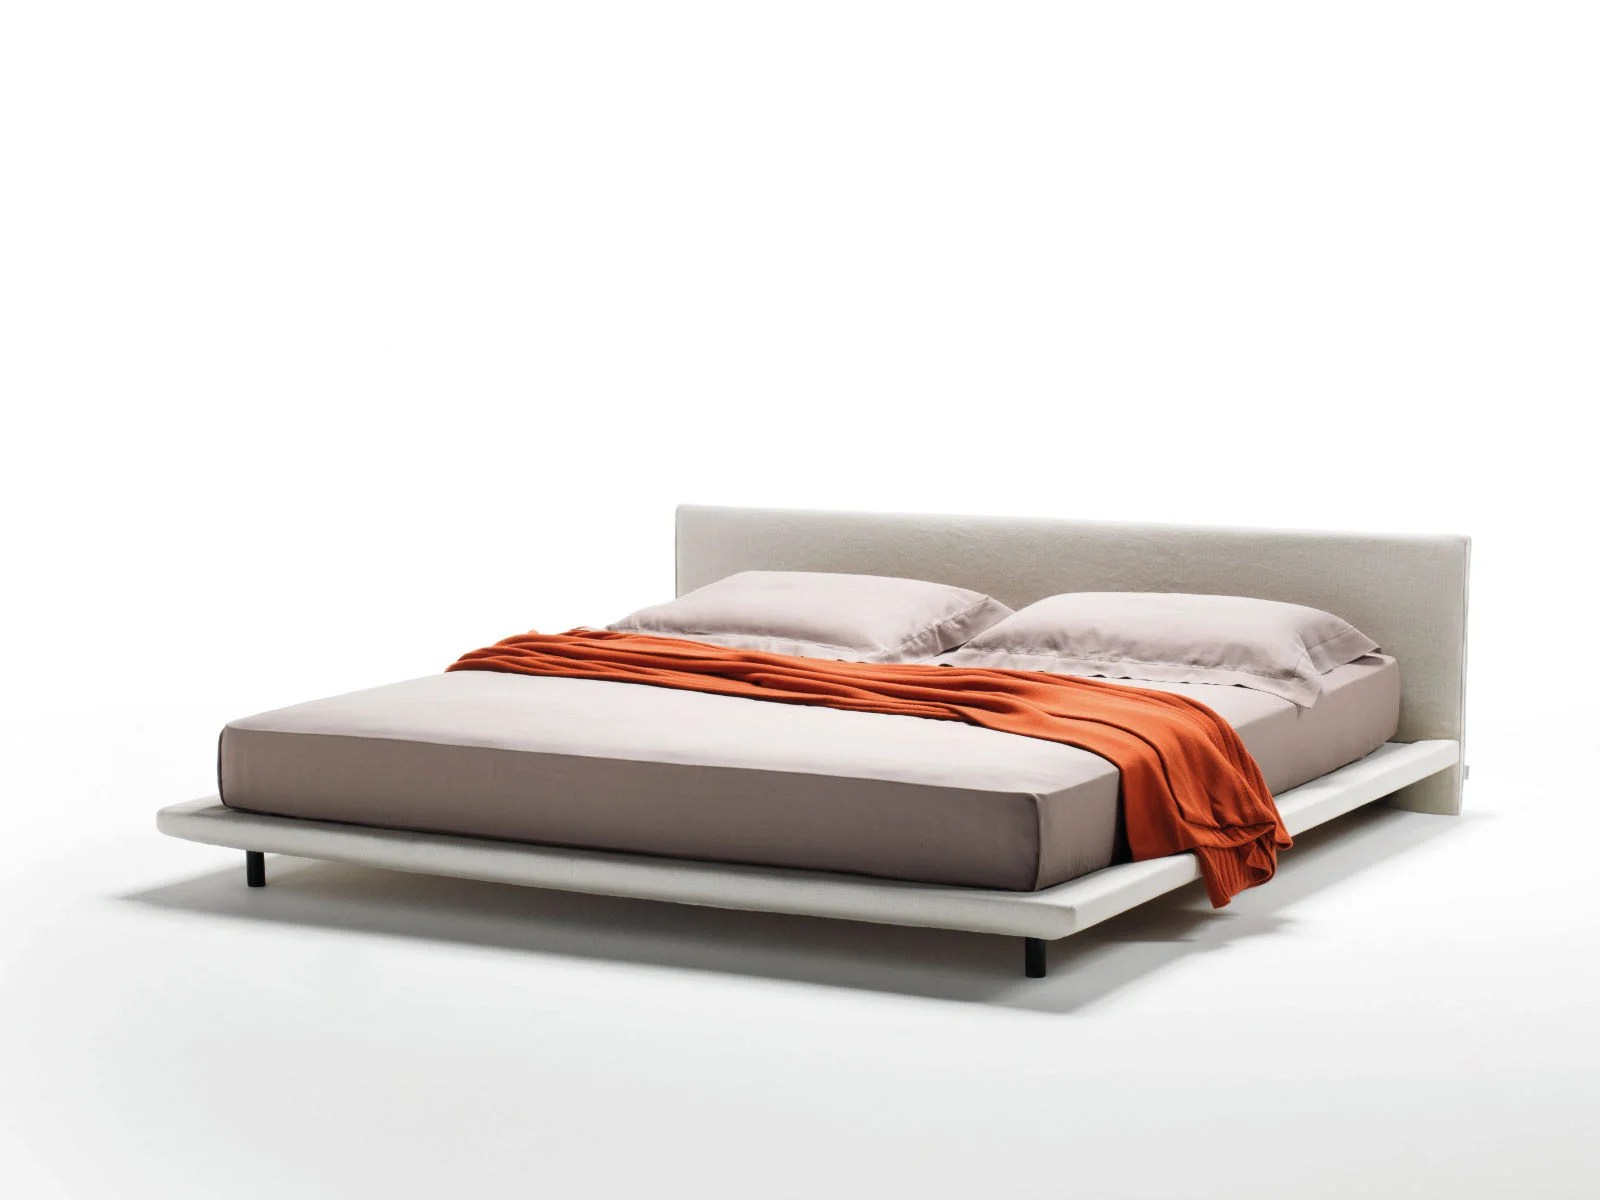 Living Divani Chemise Bed Chemise Bed By Living Divani Design Piero Lissoni